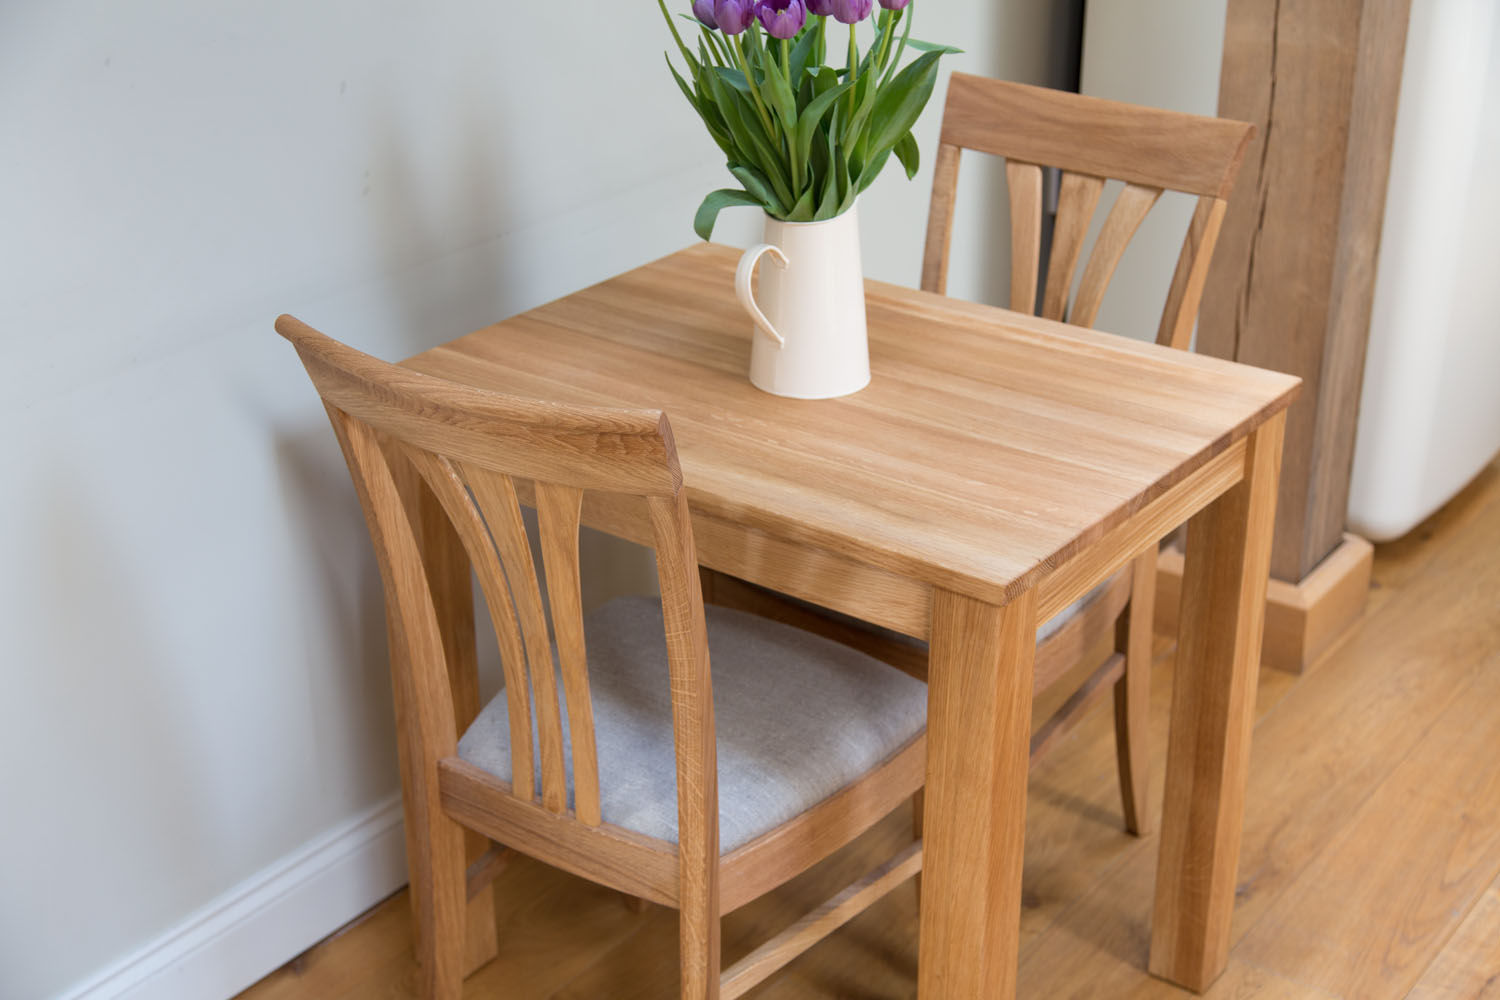 Fantastic Small Solid Oak Dining Table Minsk 80Cm X 60Cm 2 Seater Home Interior And Landscaping Ologienasavecom